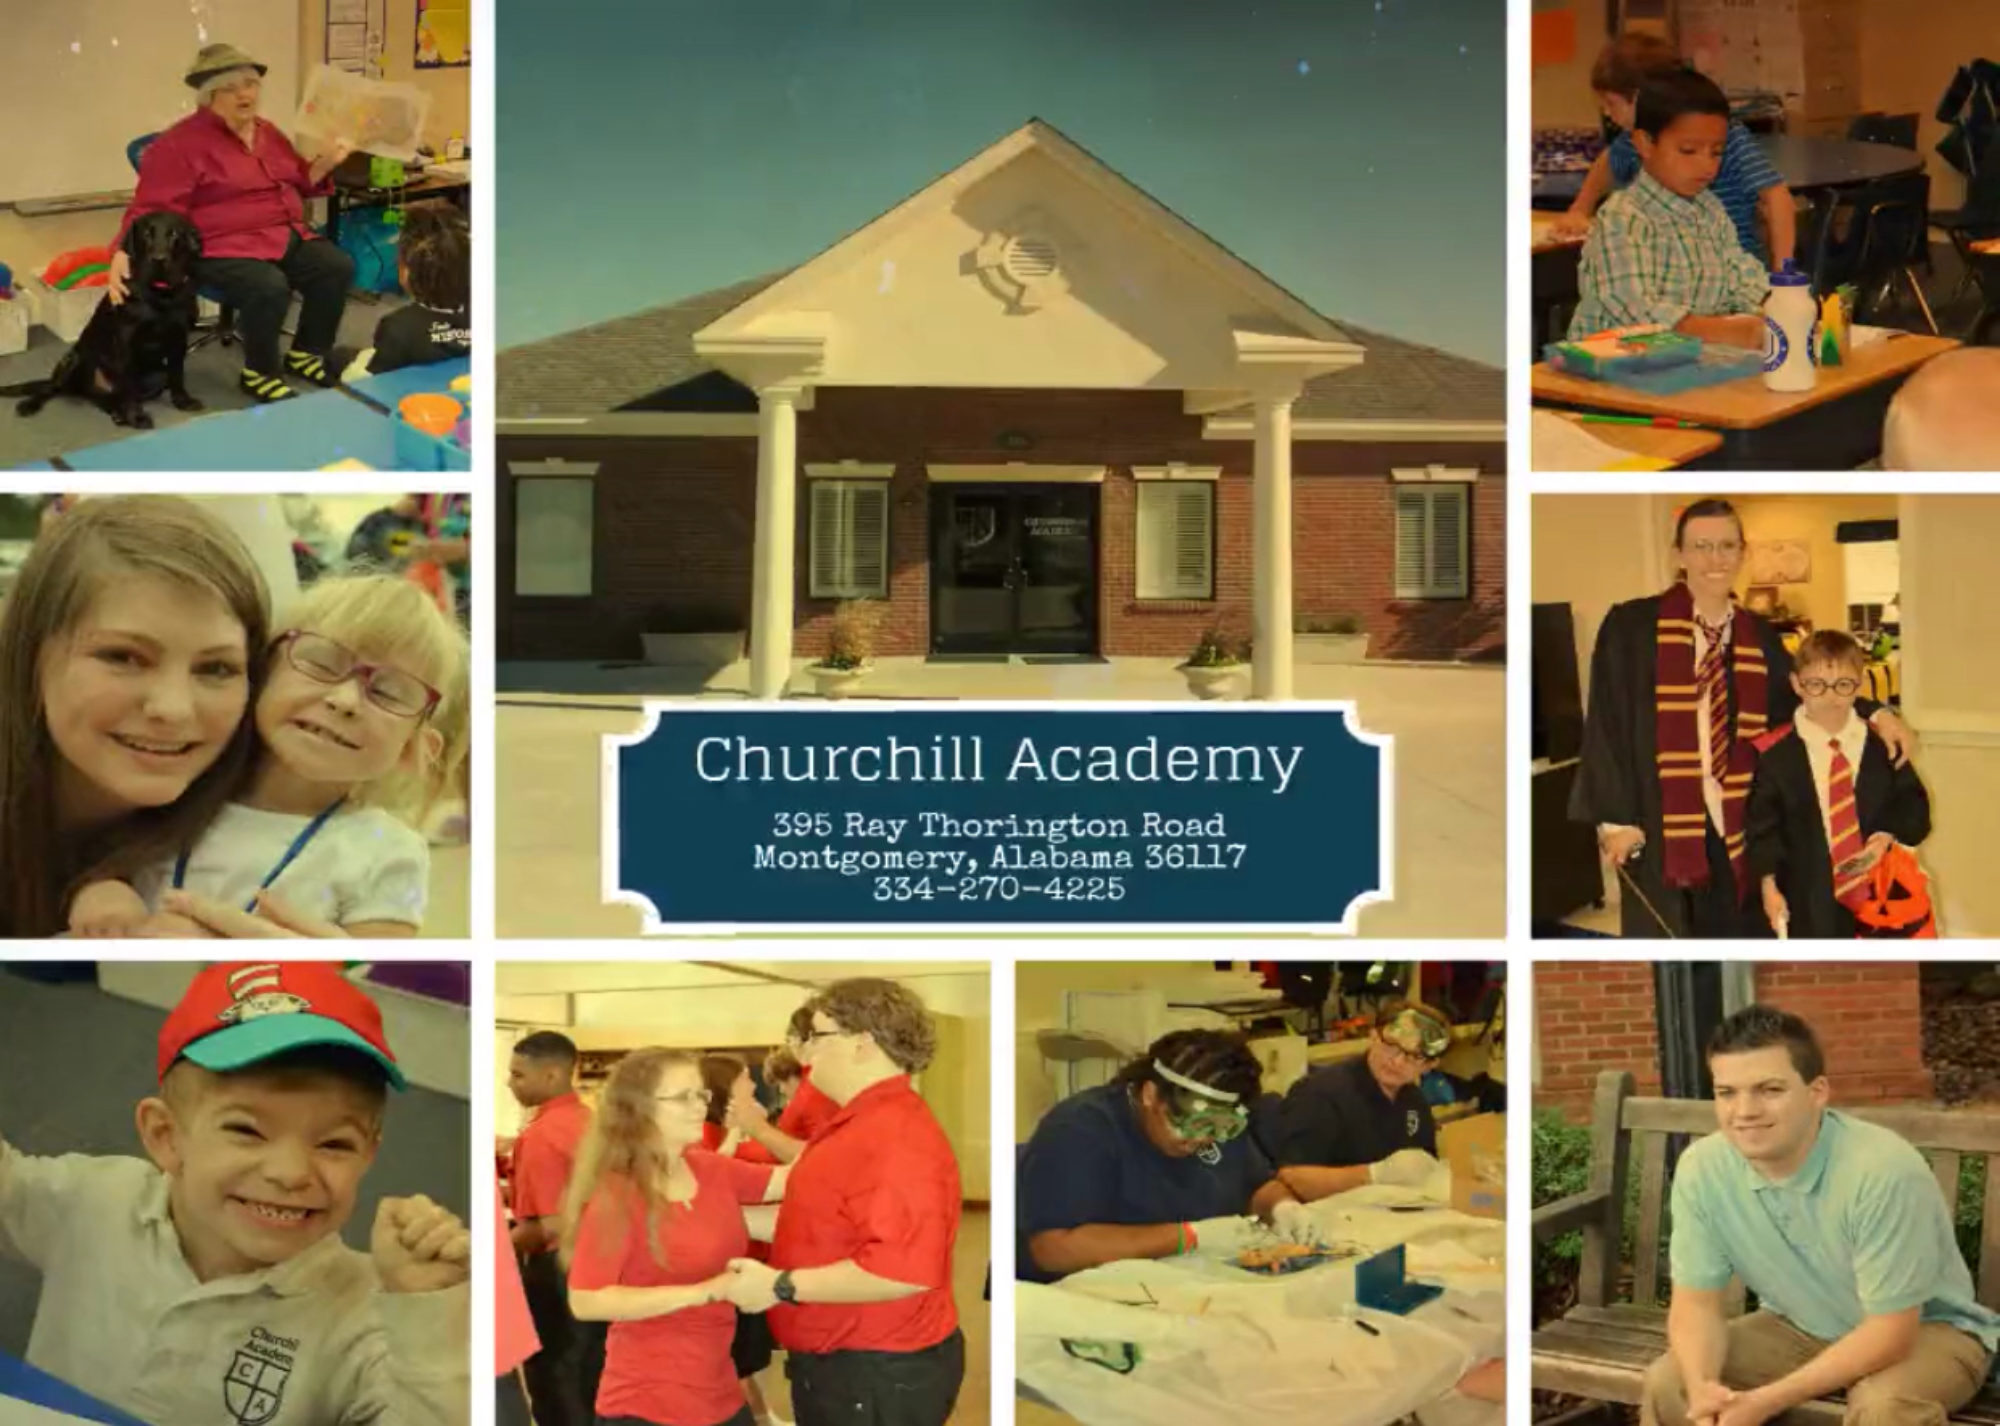 Churchill Academy